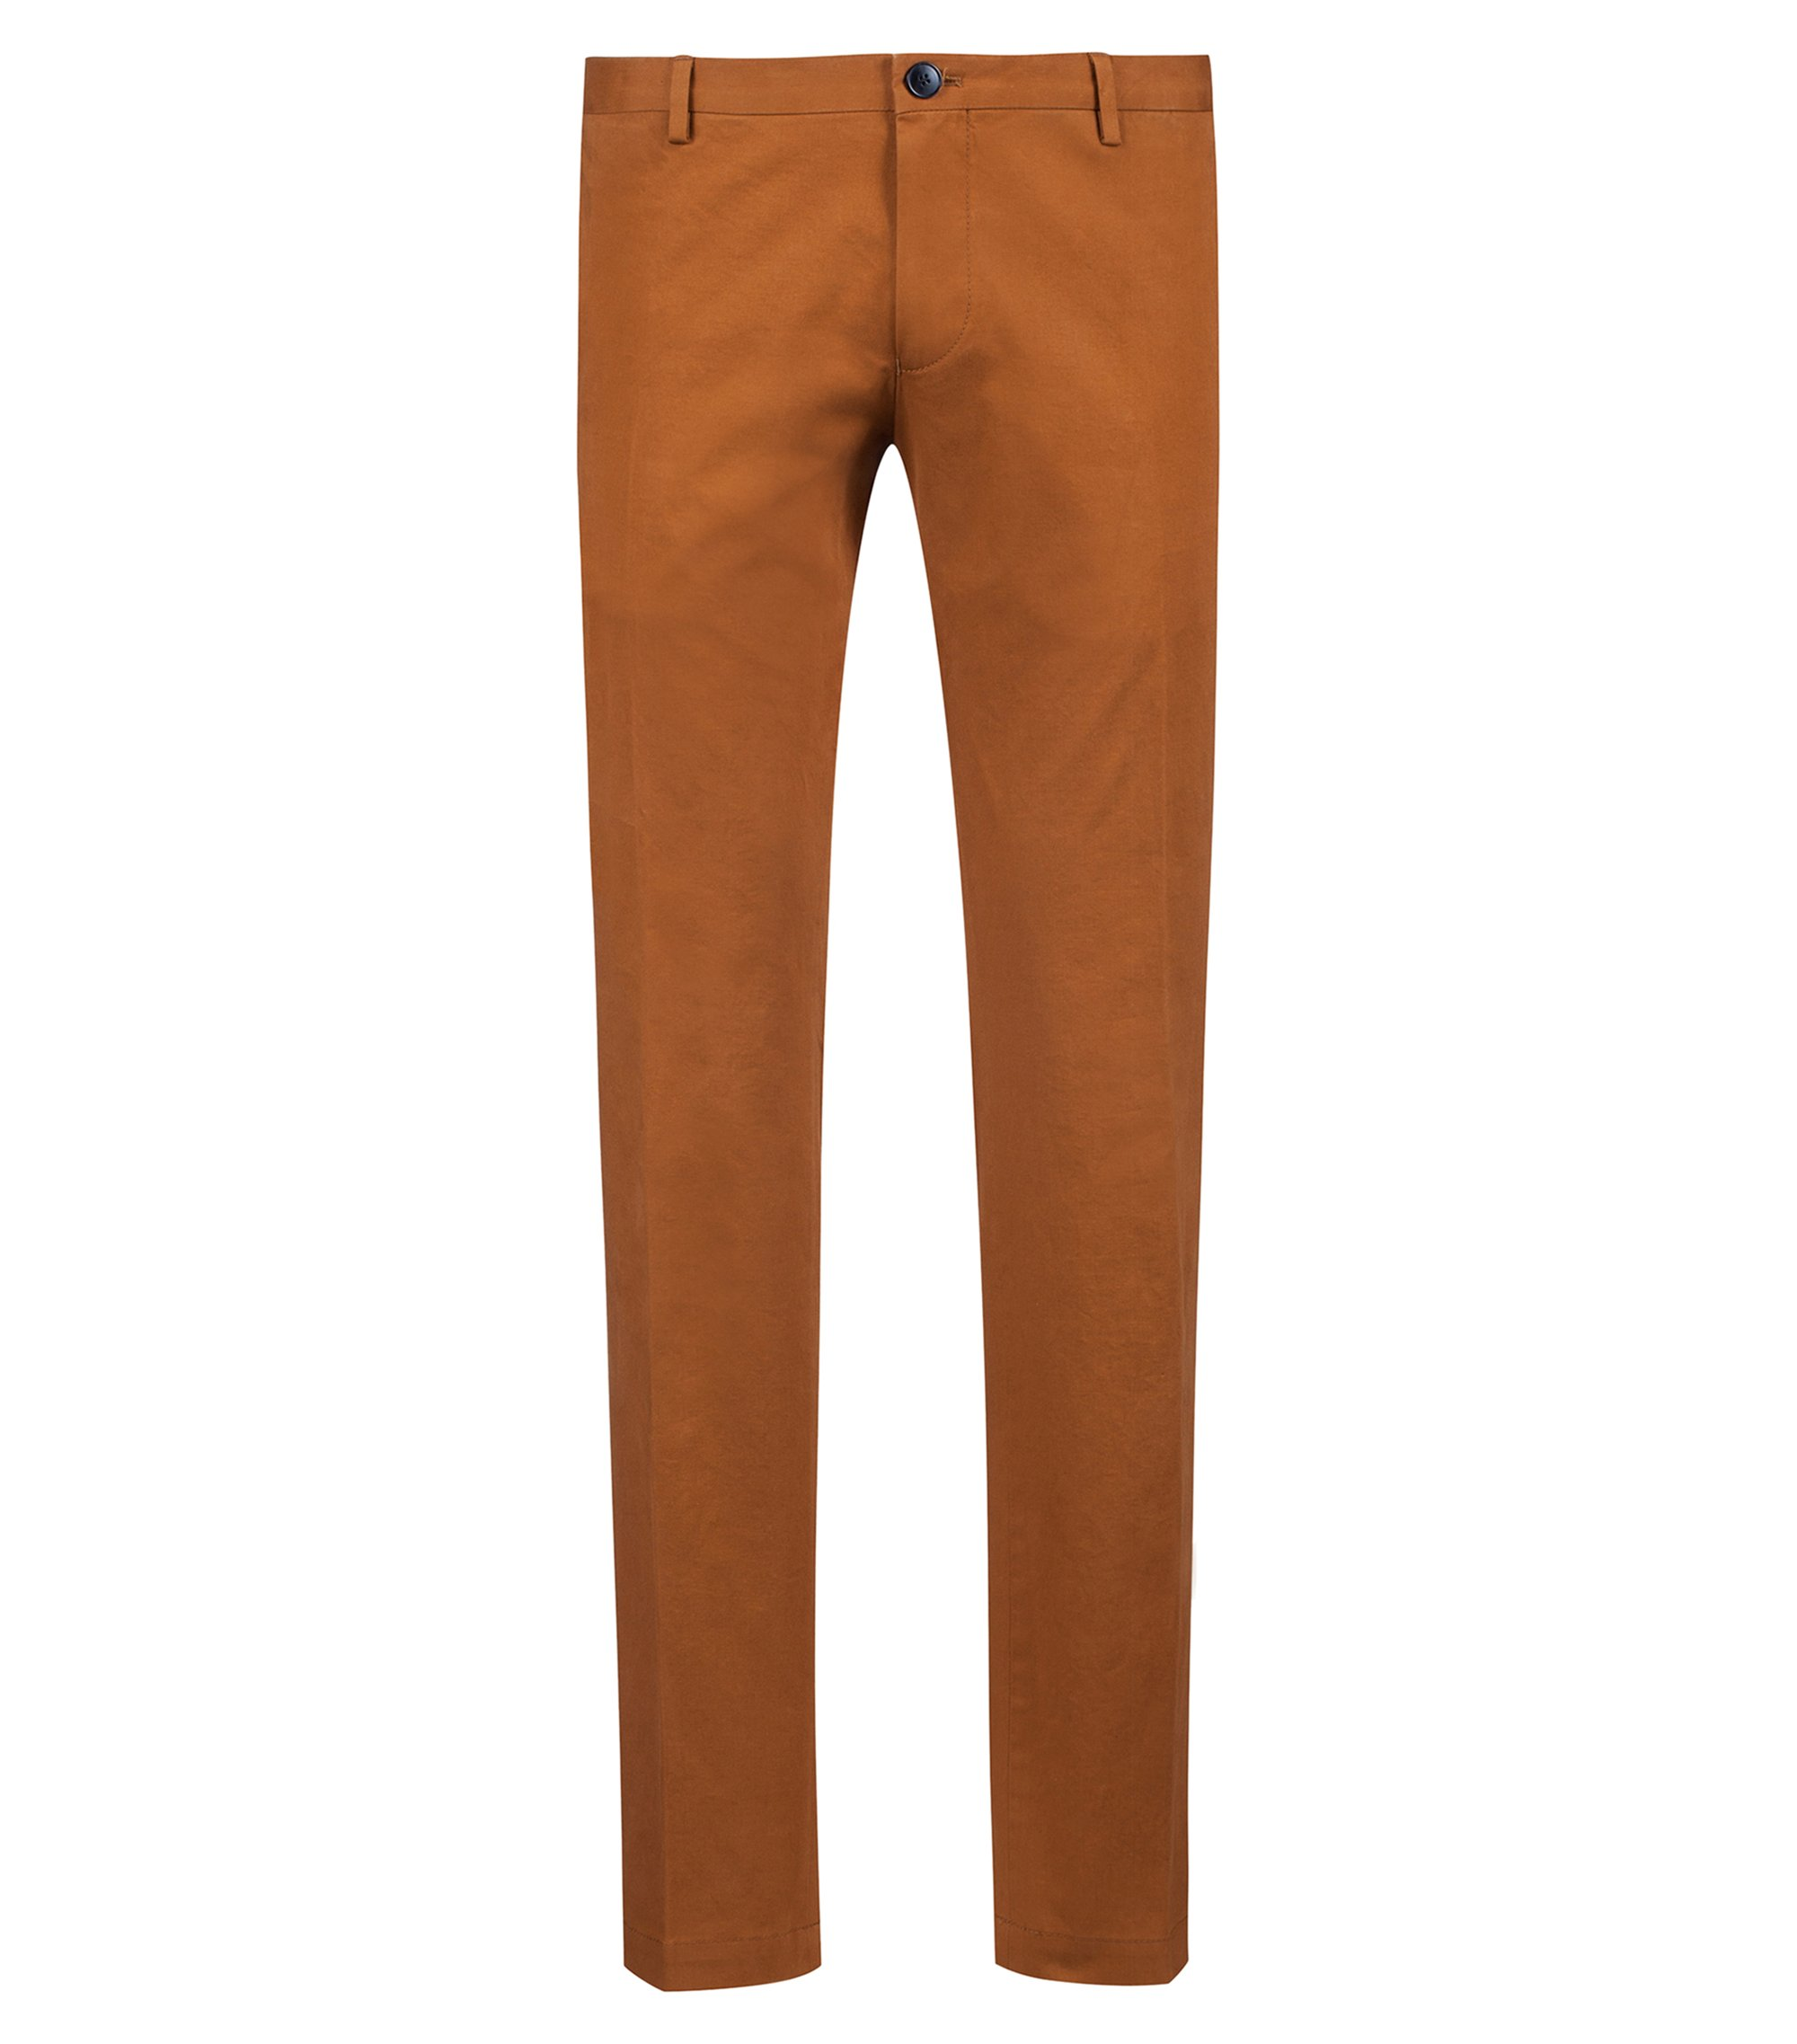 Pantalon Slim Fit en coton stretch légèrement délavé , Marron